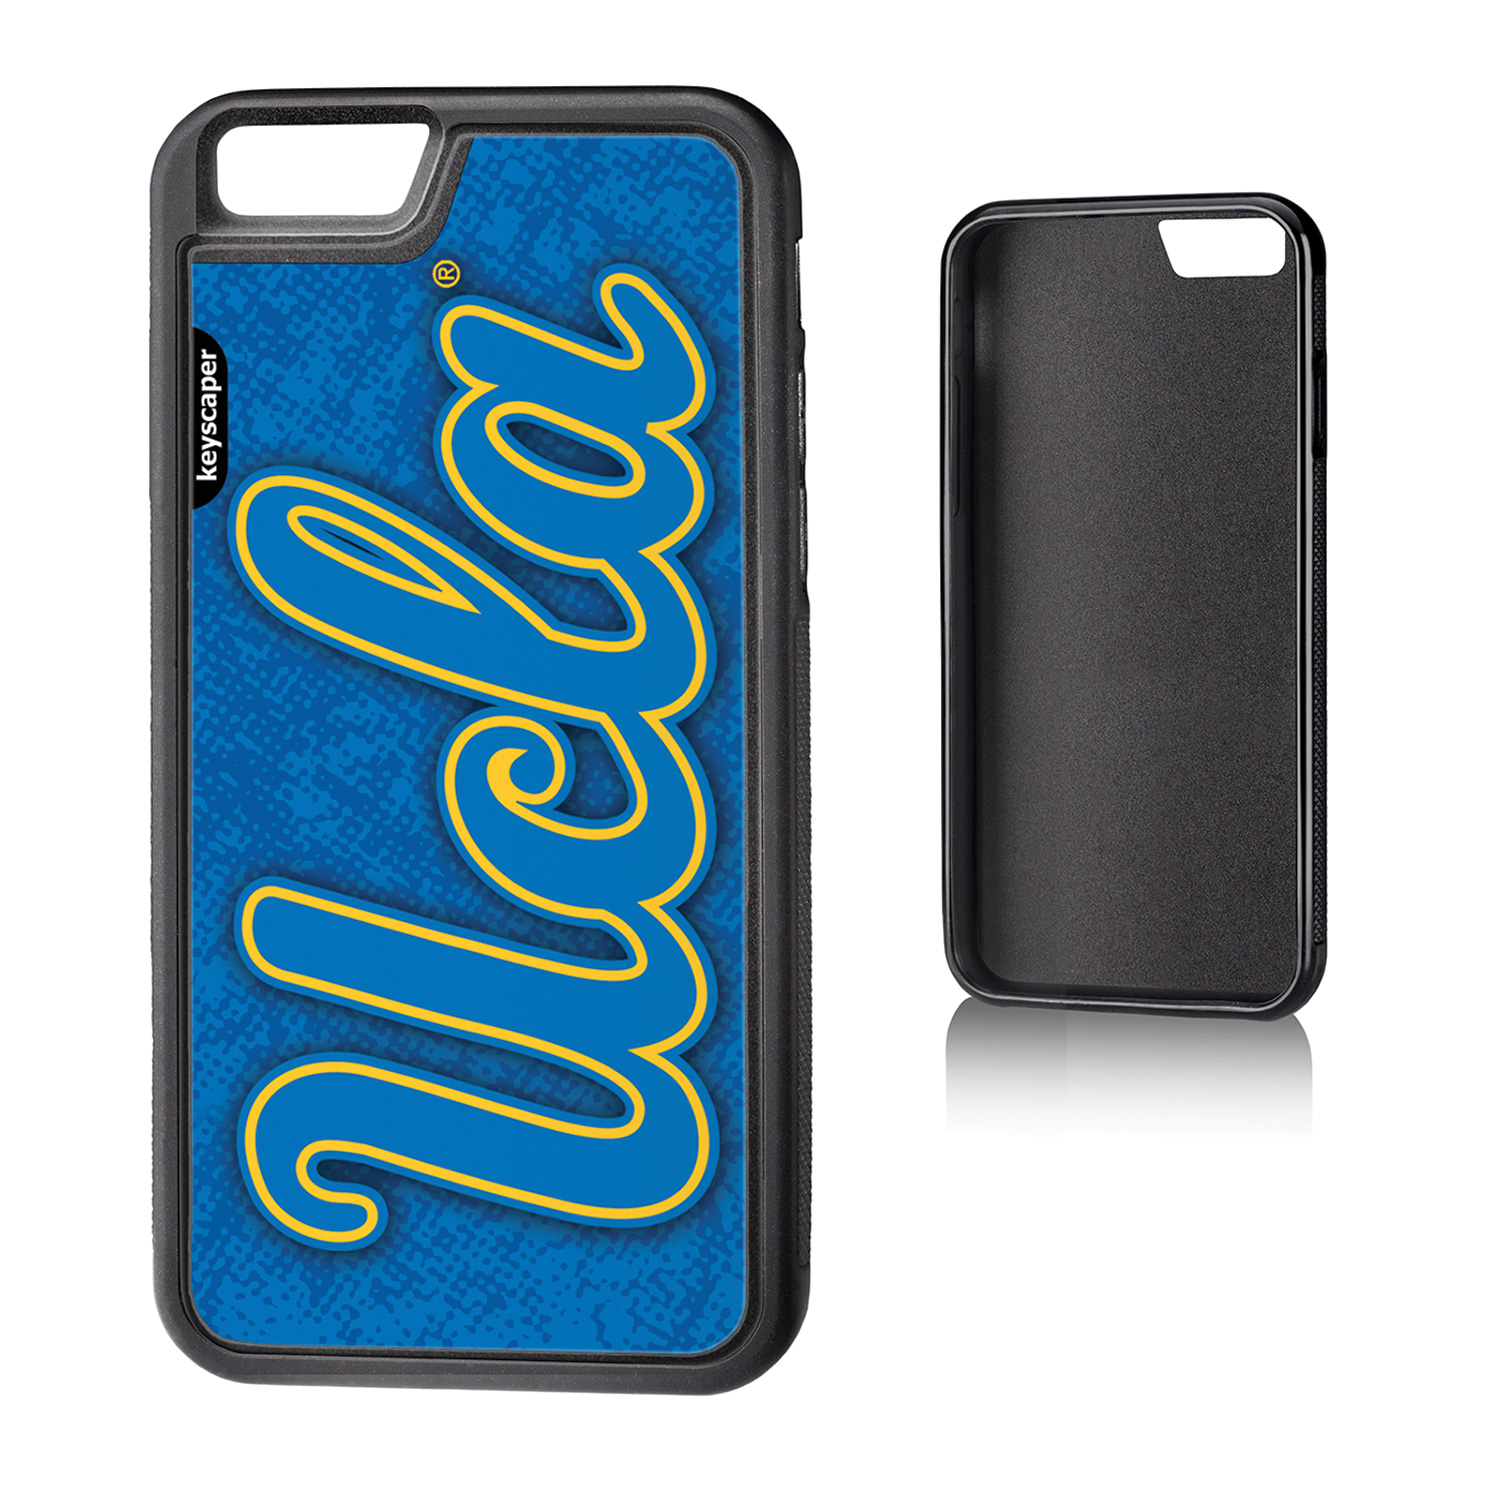 UCLA Bruins iPhone 6 (4.7 inch) Bumper Case